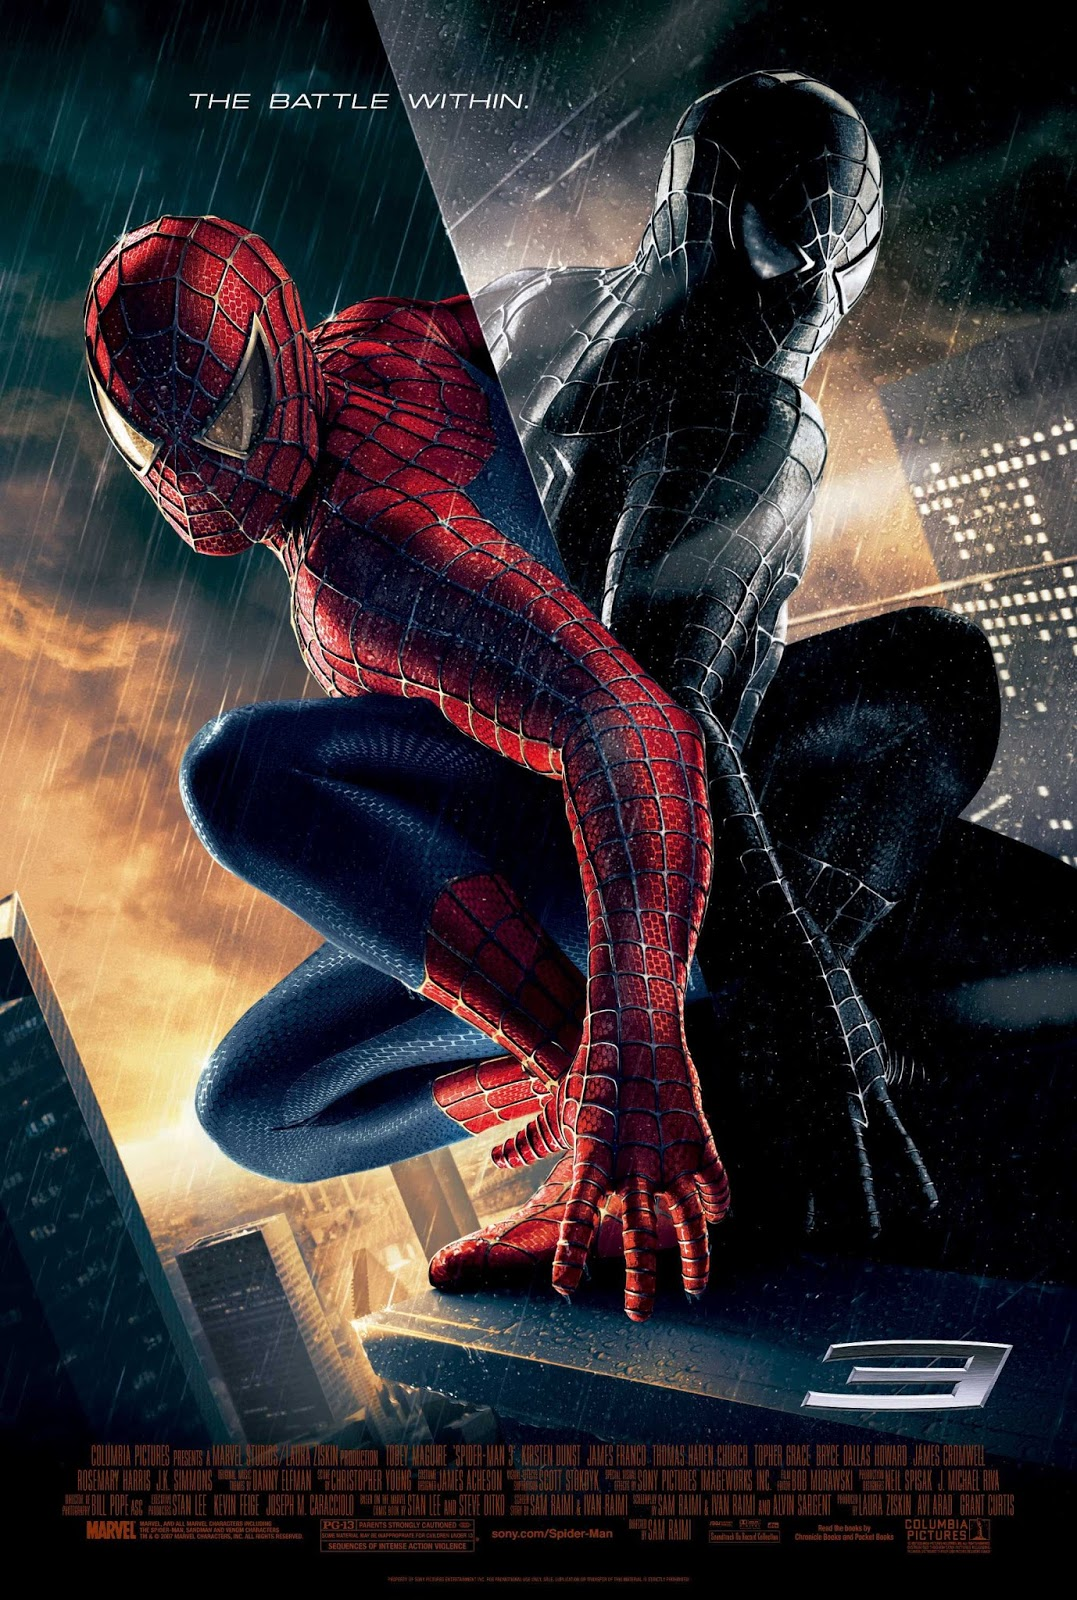 SpiderMan 3 (2007) 720p BRRip Hindi Dual Audio Full Movie